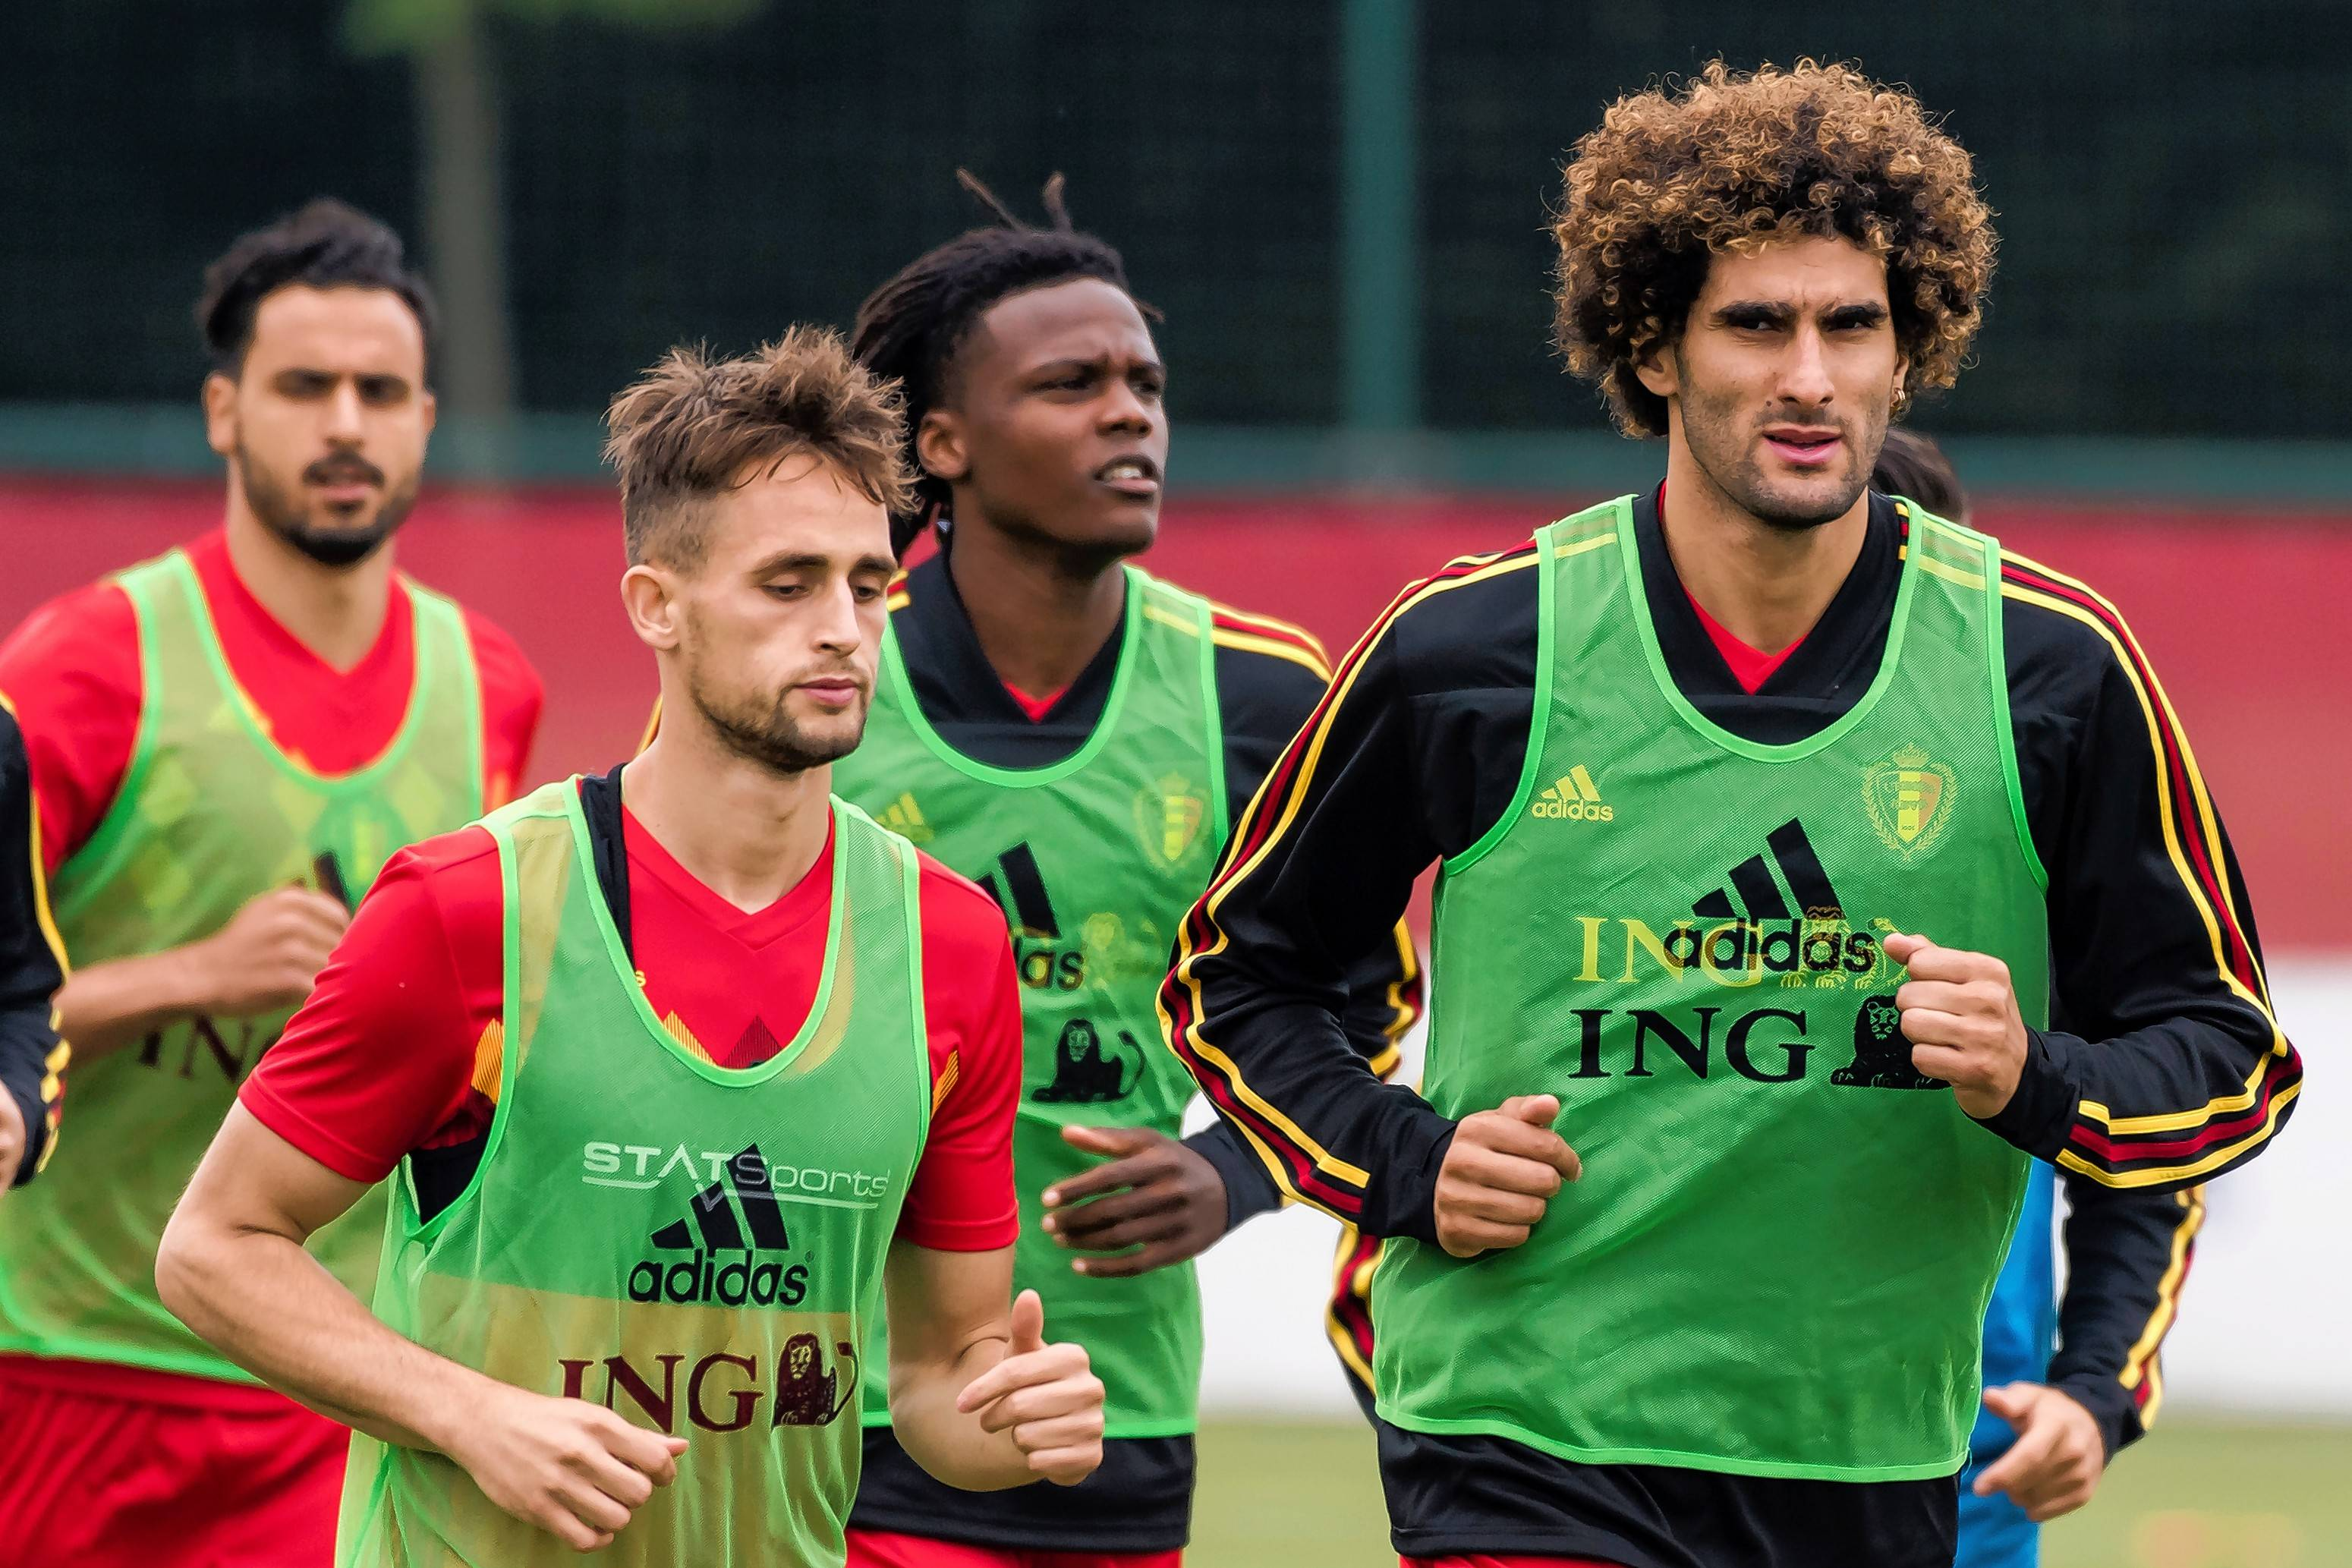 Members of Belgium's talented team, left to right, Nacer Chadli, Adnan Januzaj, Dedryck Boyata and Marouane Fellaini prepare for the World Cup opener on Monday.